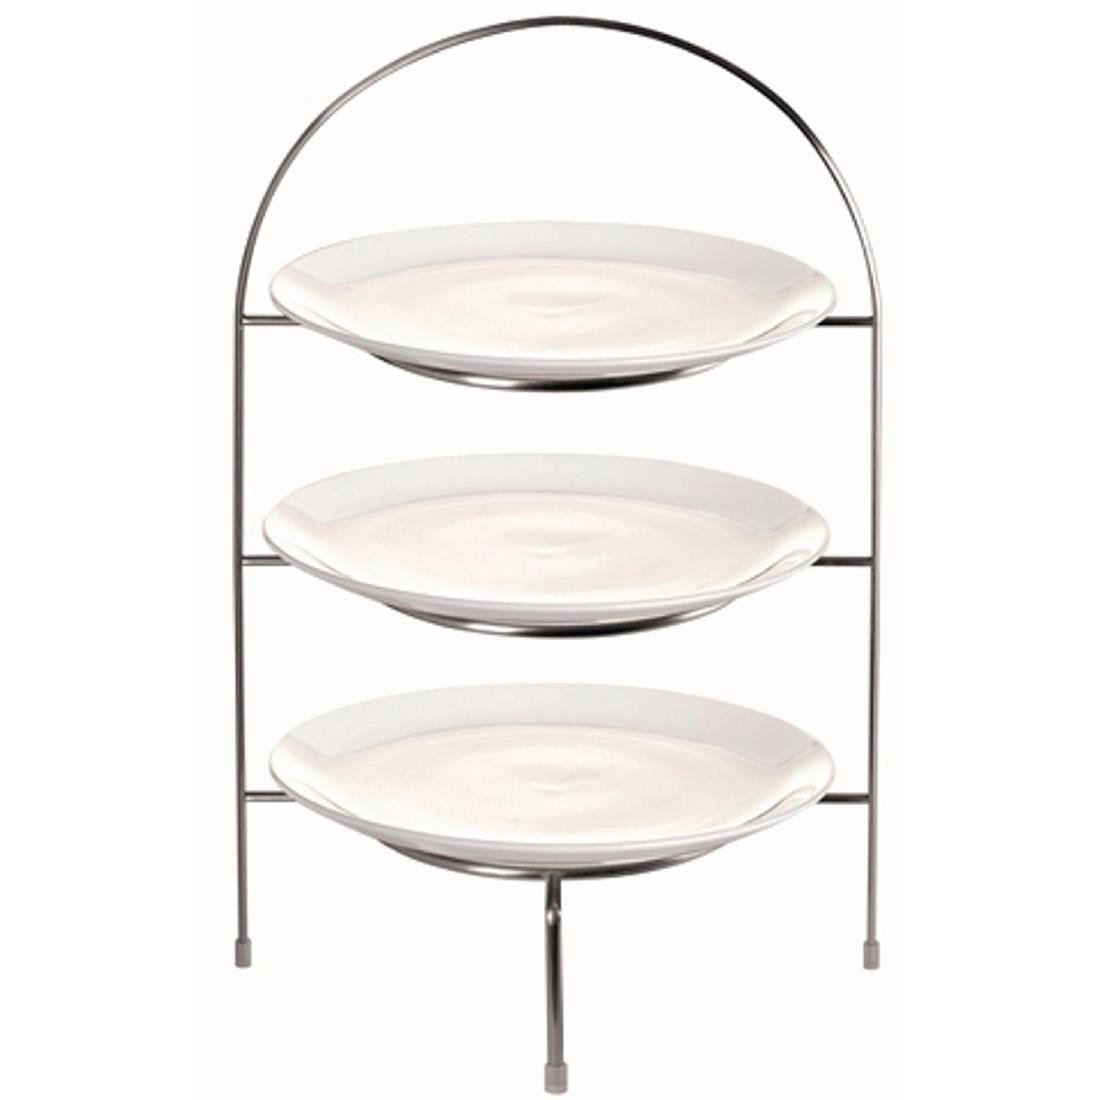 afternoon-tea-stand-for-plates-up-to-210mm